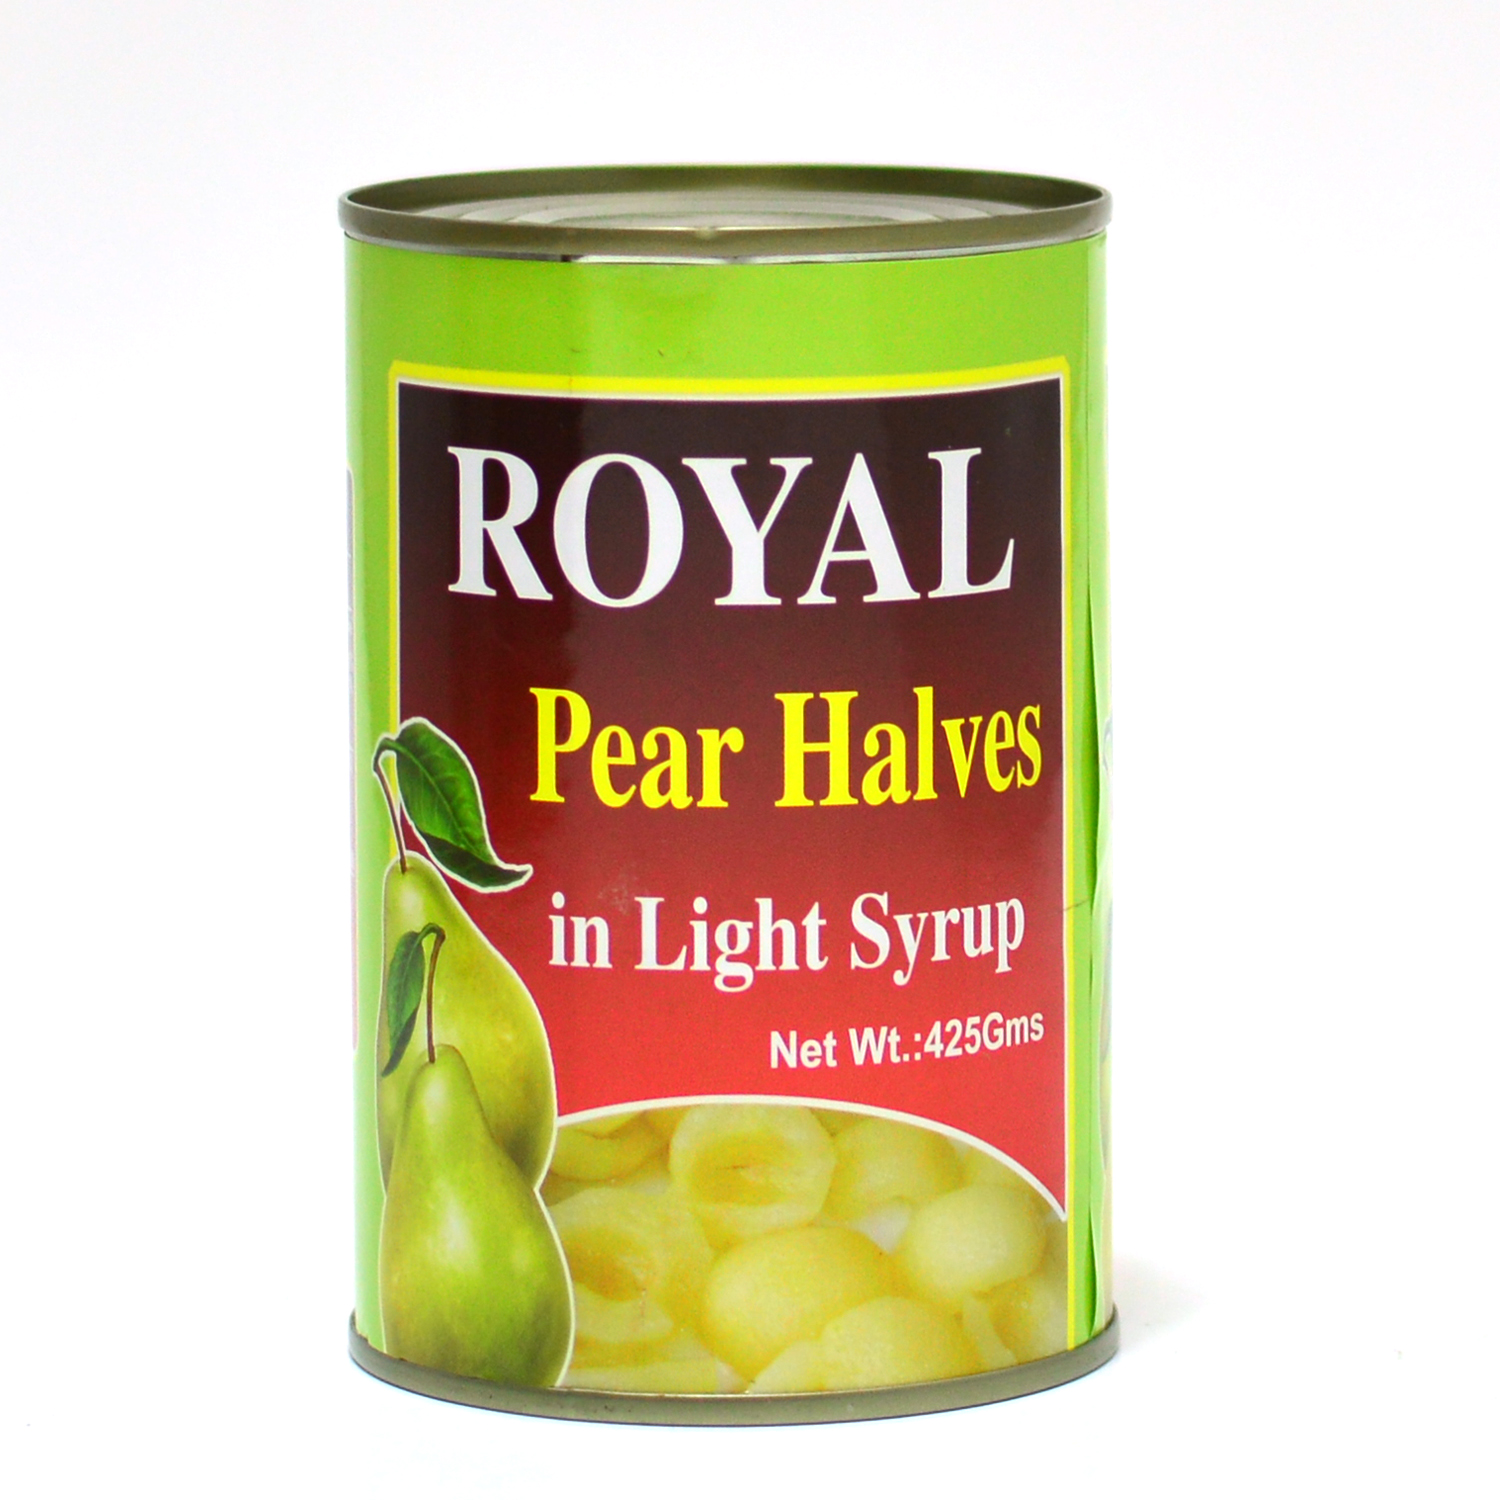 Royal Pear Halves 425g